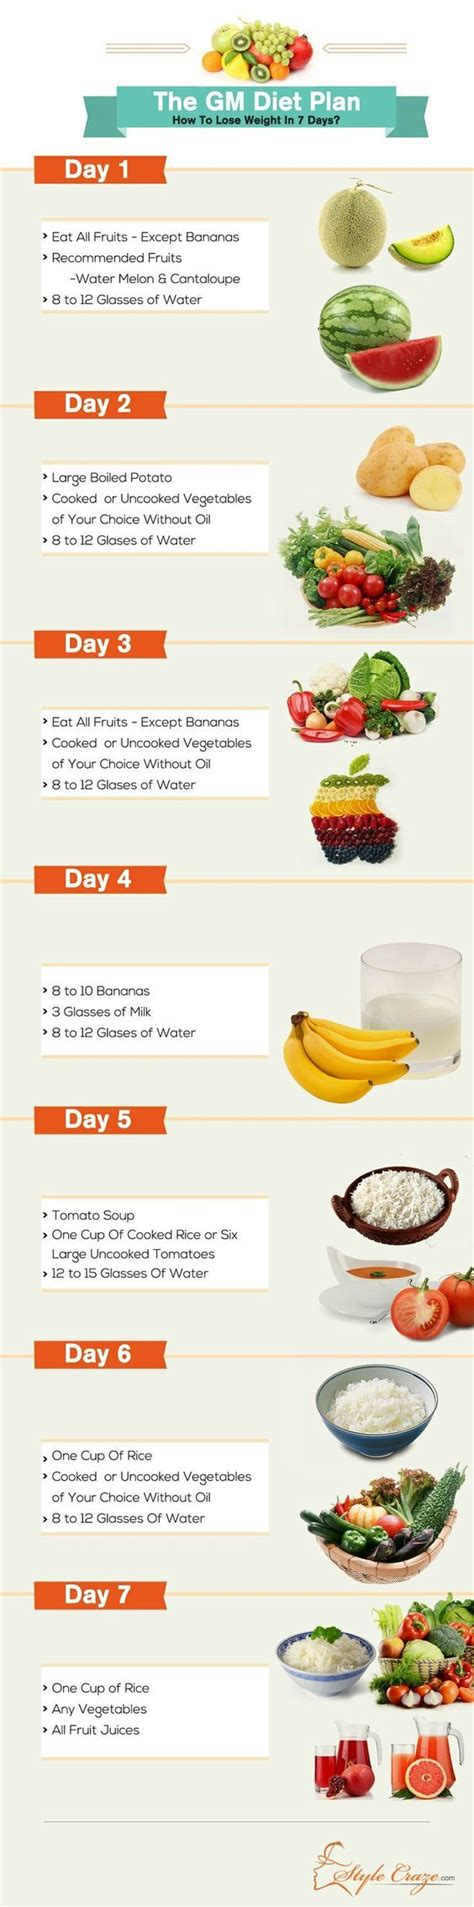 Detox Diet Day 1 Fruit by The Gm Diet Plan How To Lose Weight In Just 7 Days